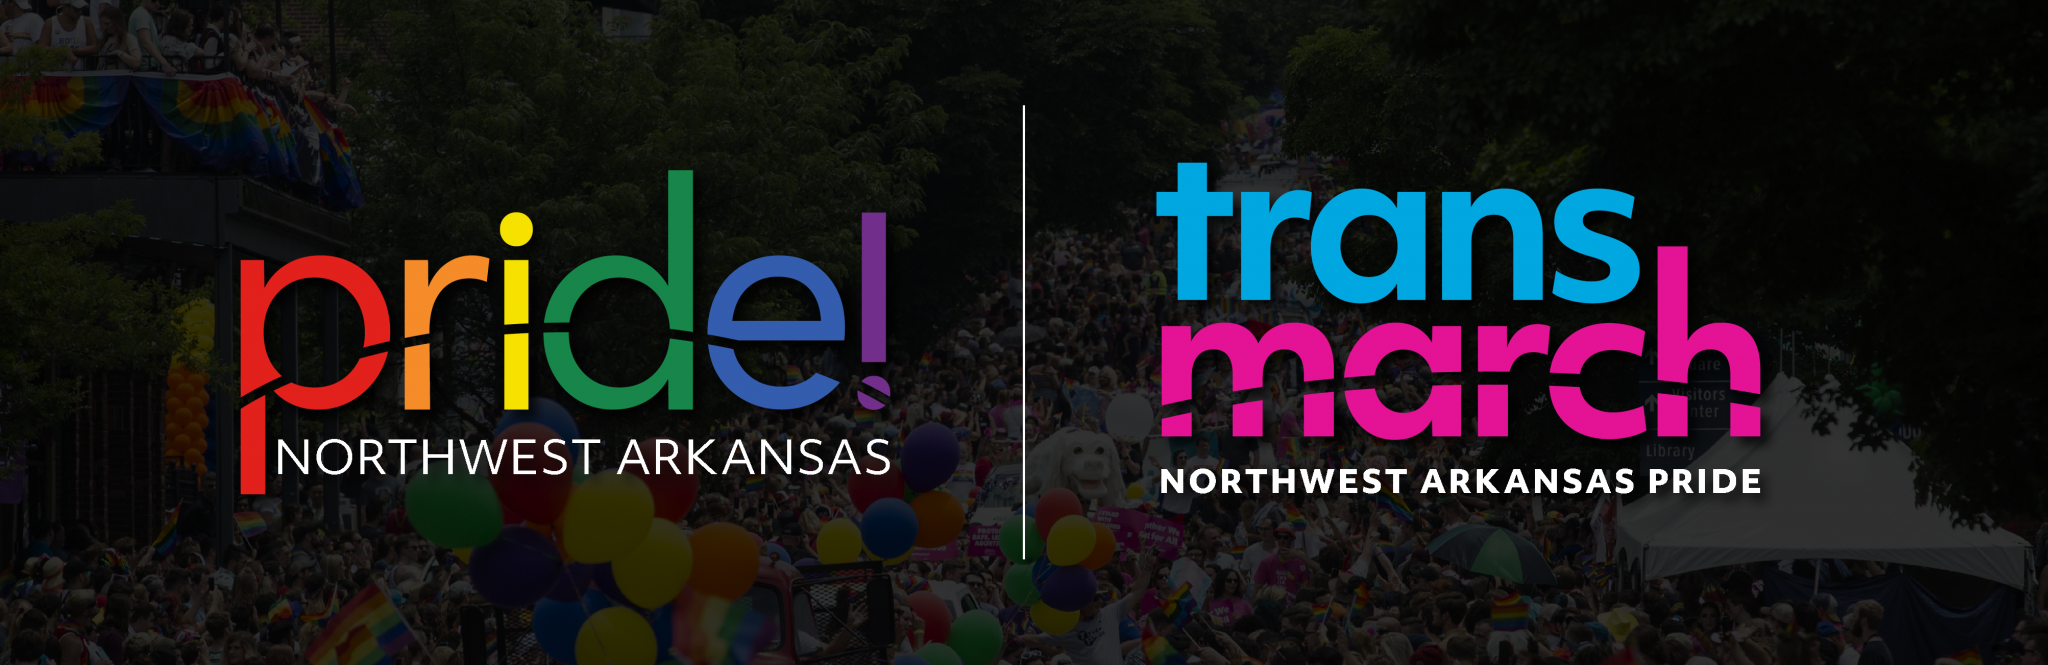 Northwest Arkansas Pride and Trans March